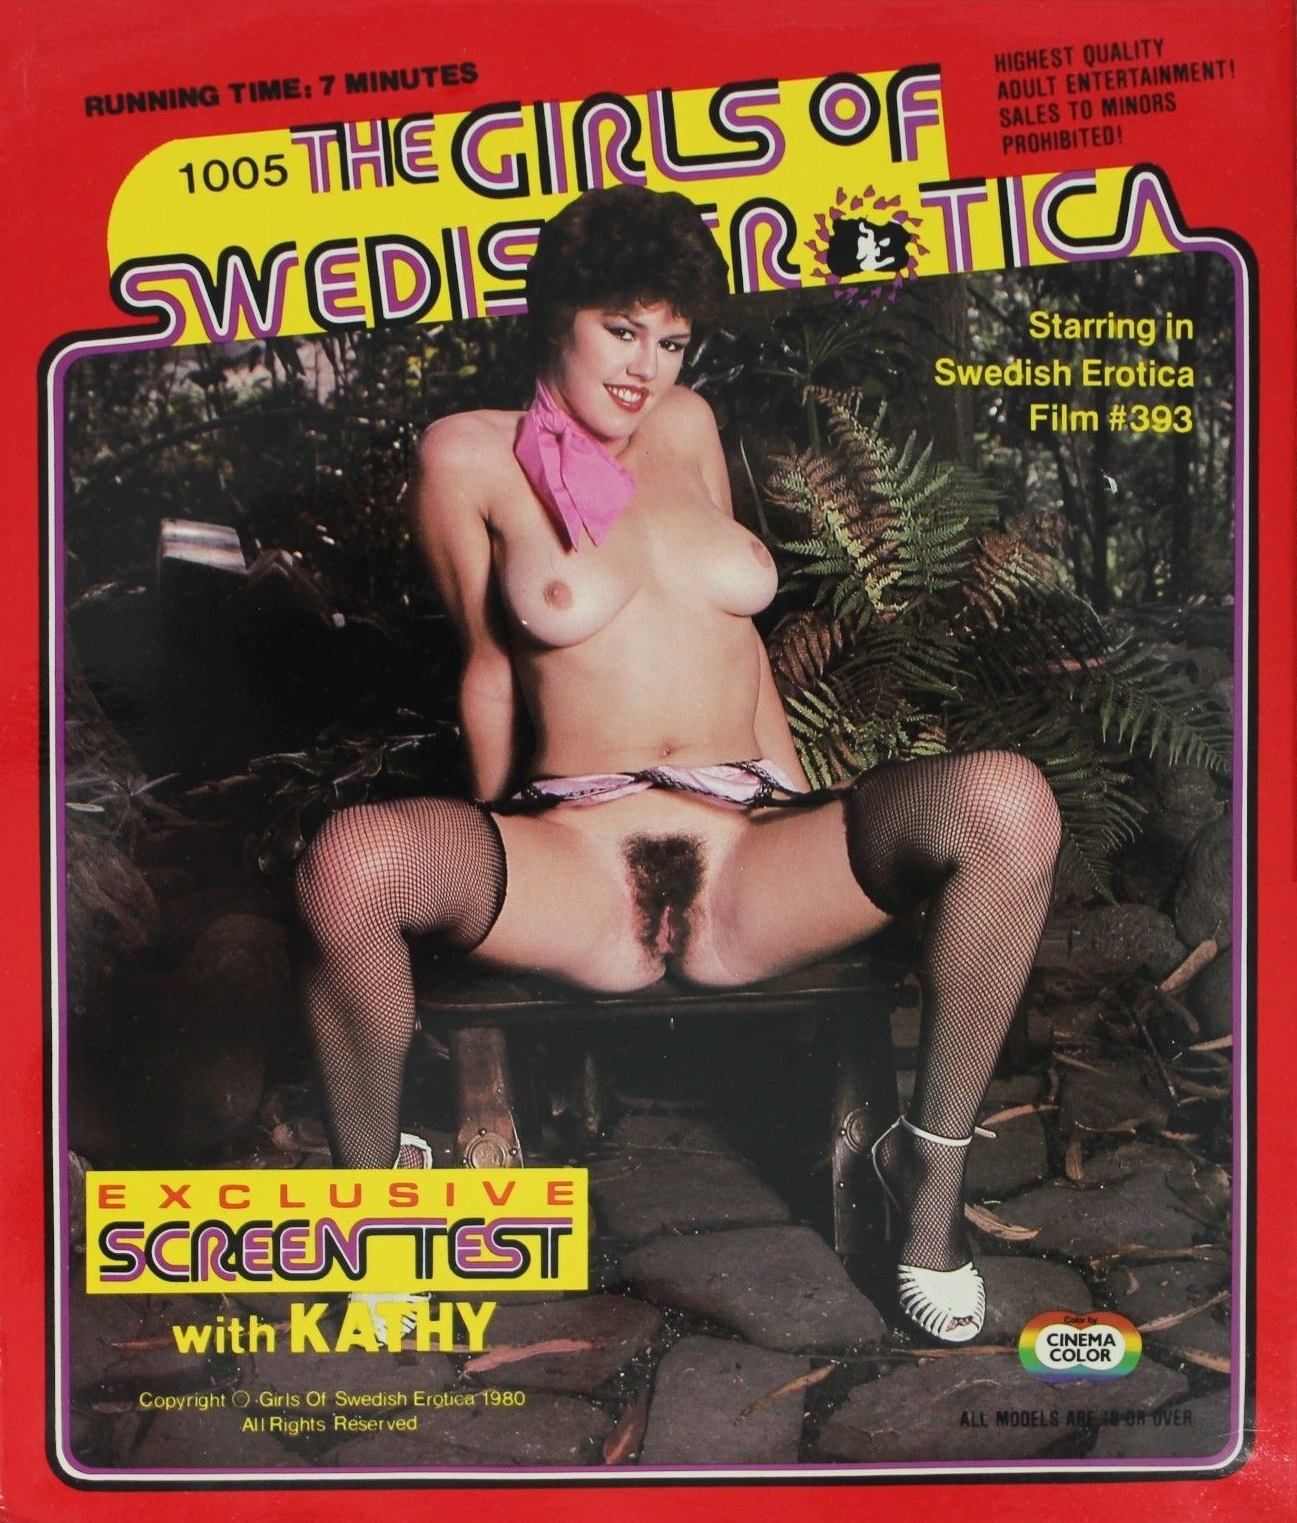 The Girls of Swedish Erotica 1005 - Part One - Kathy